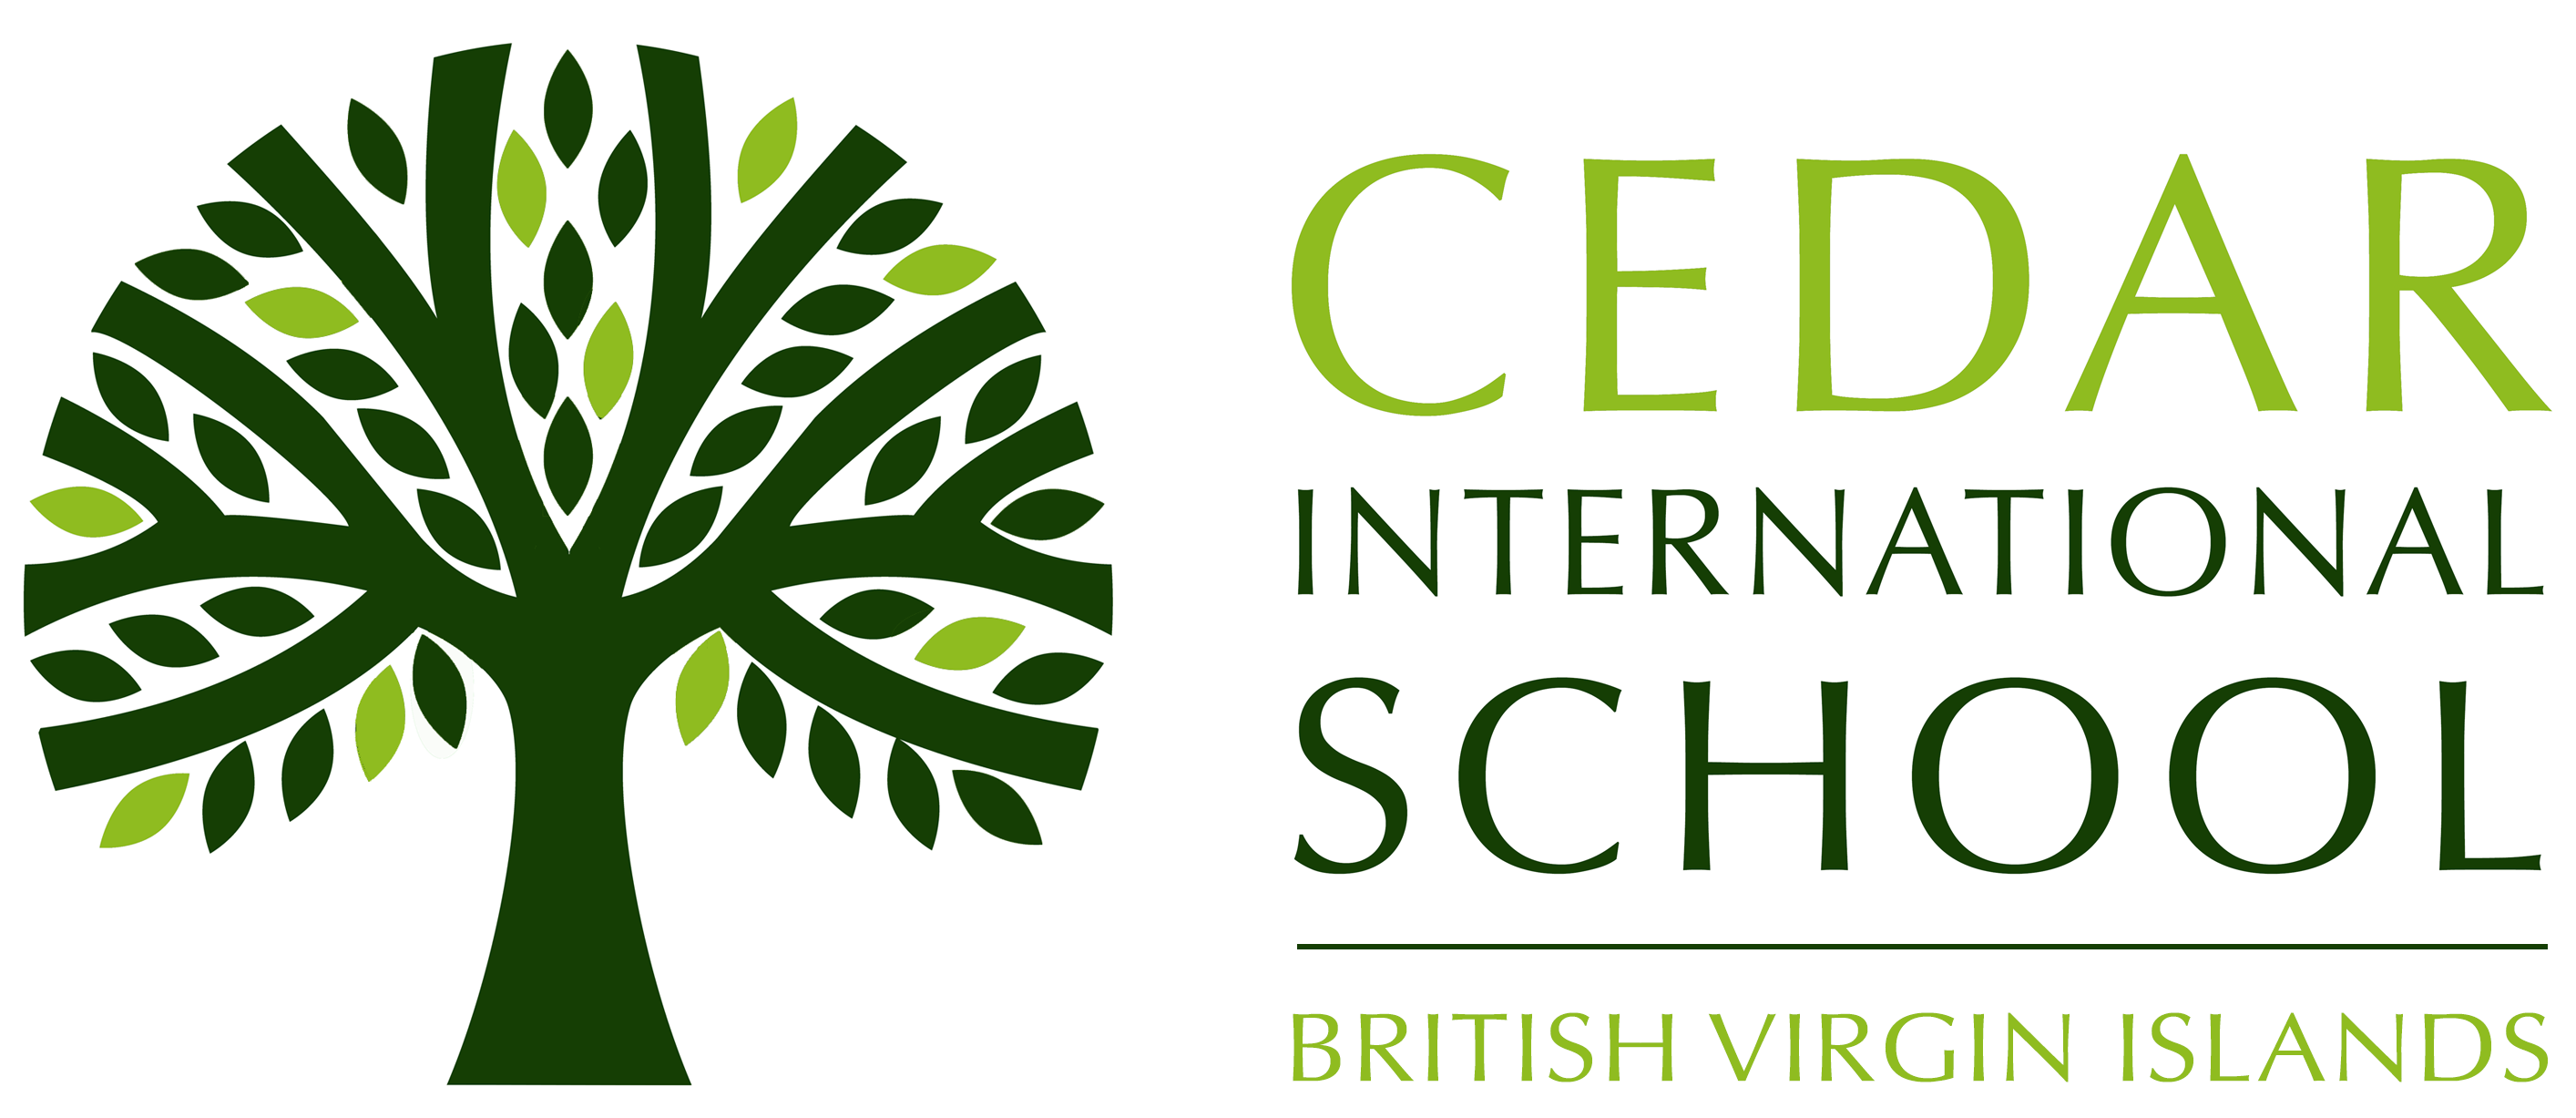 Cedar International School